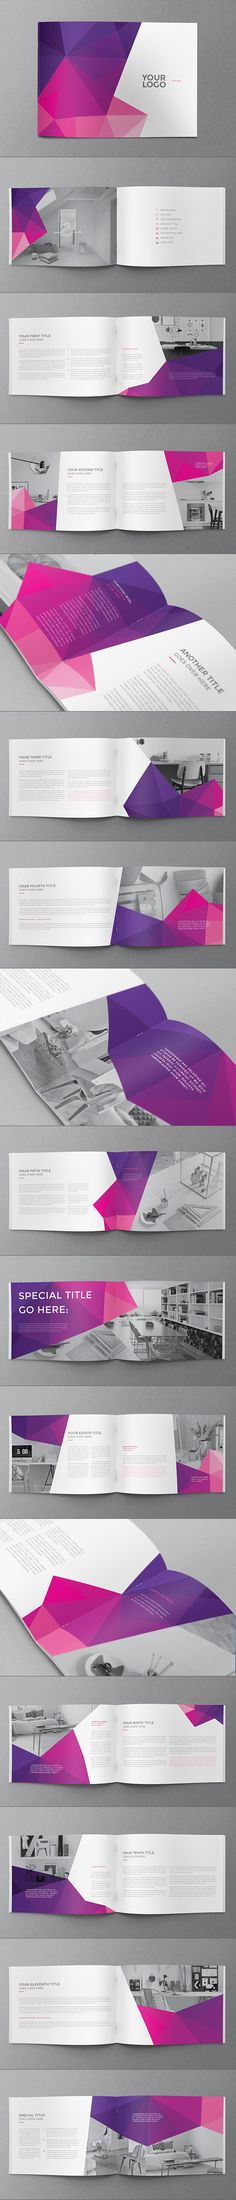 Colorful Pattern Brochure on Behance magic editorial Pinterest - retro brochure template